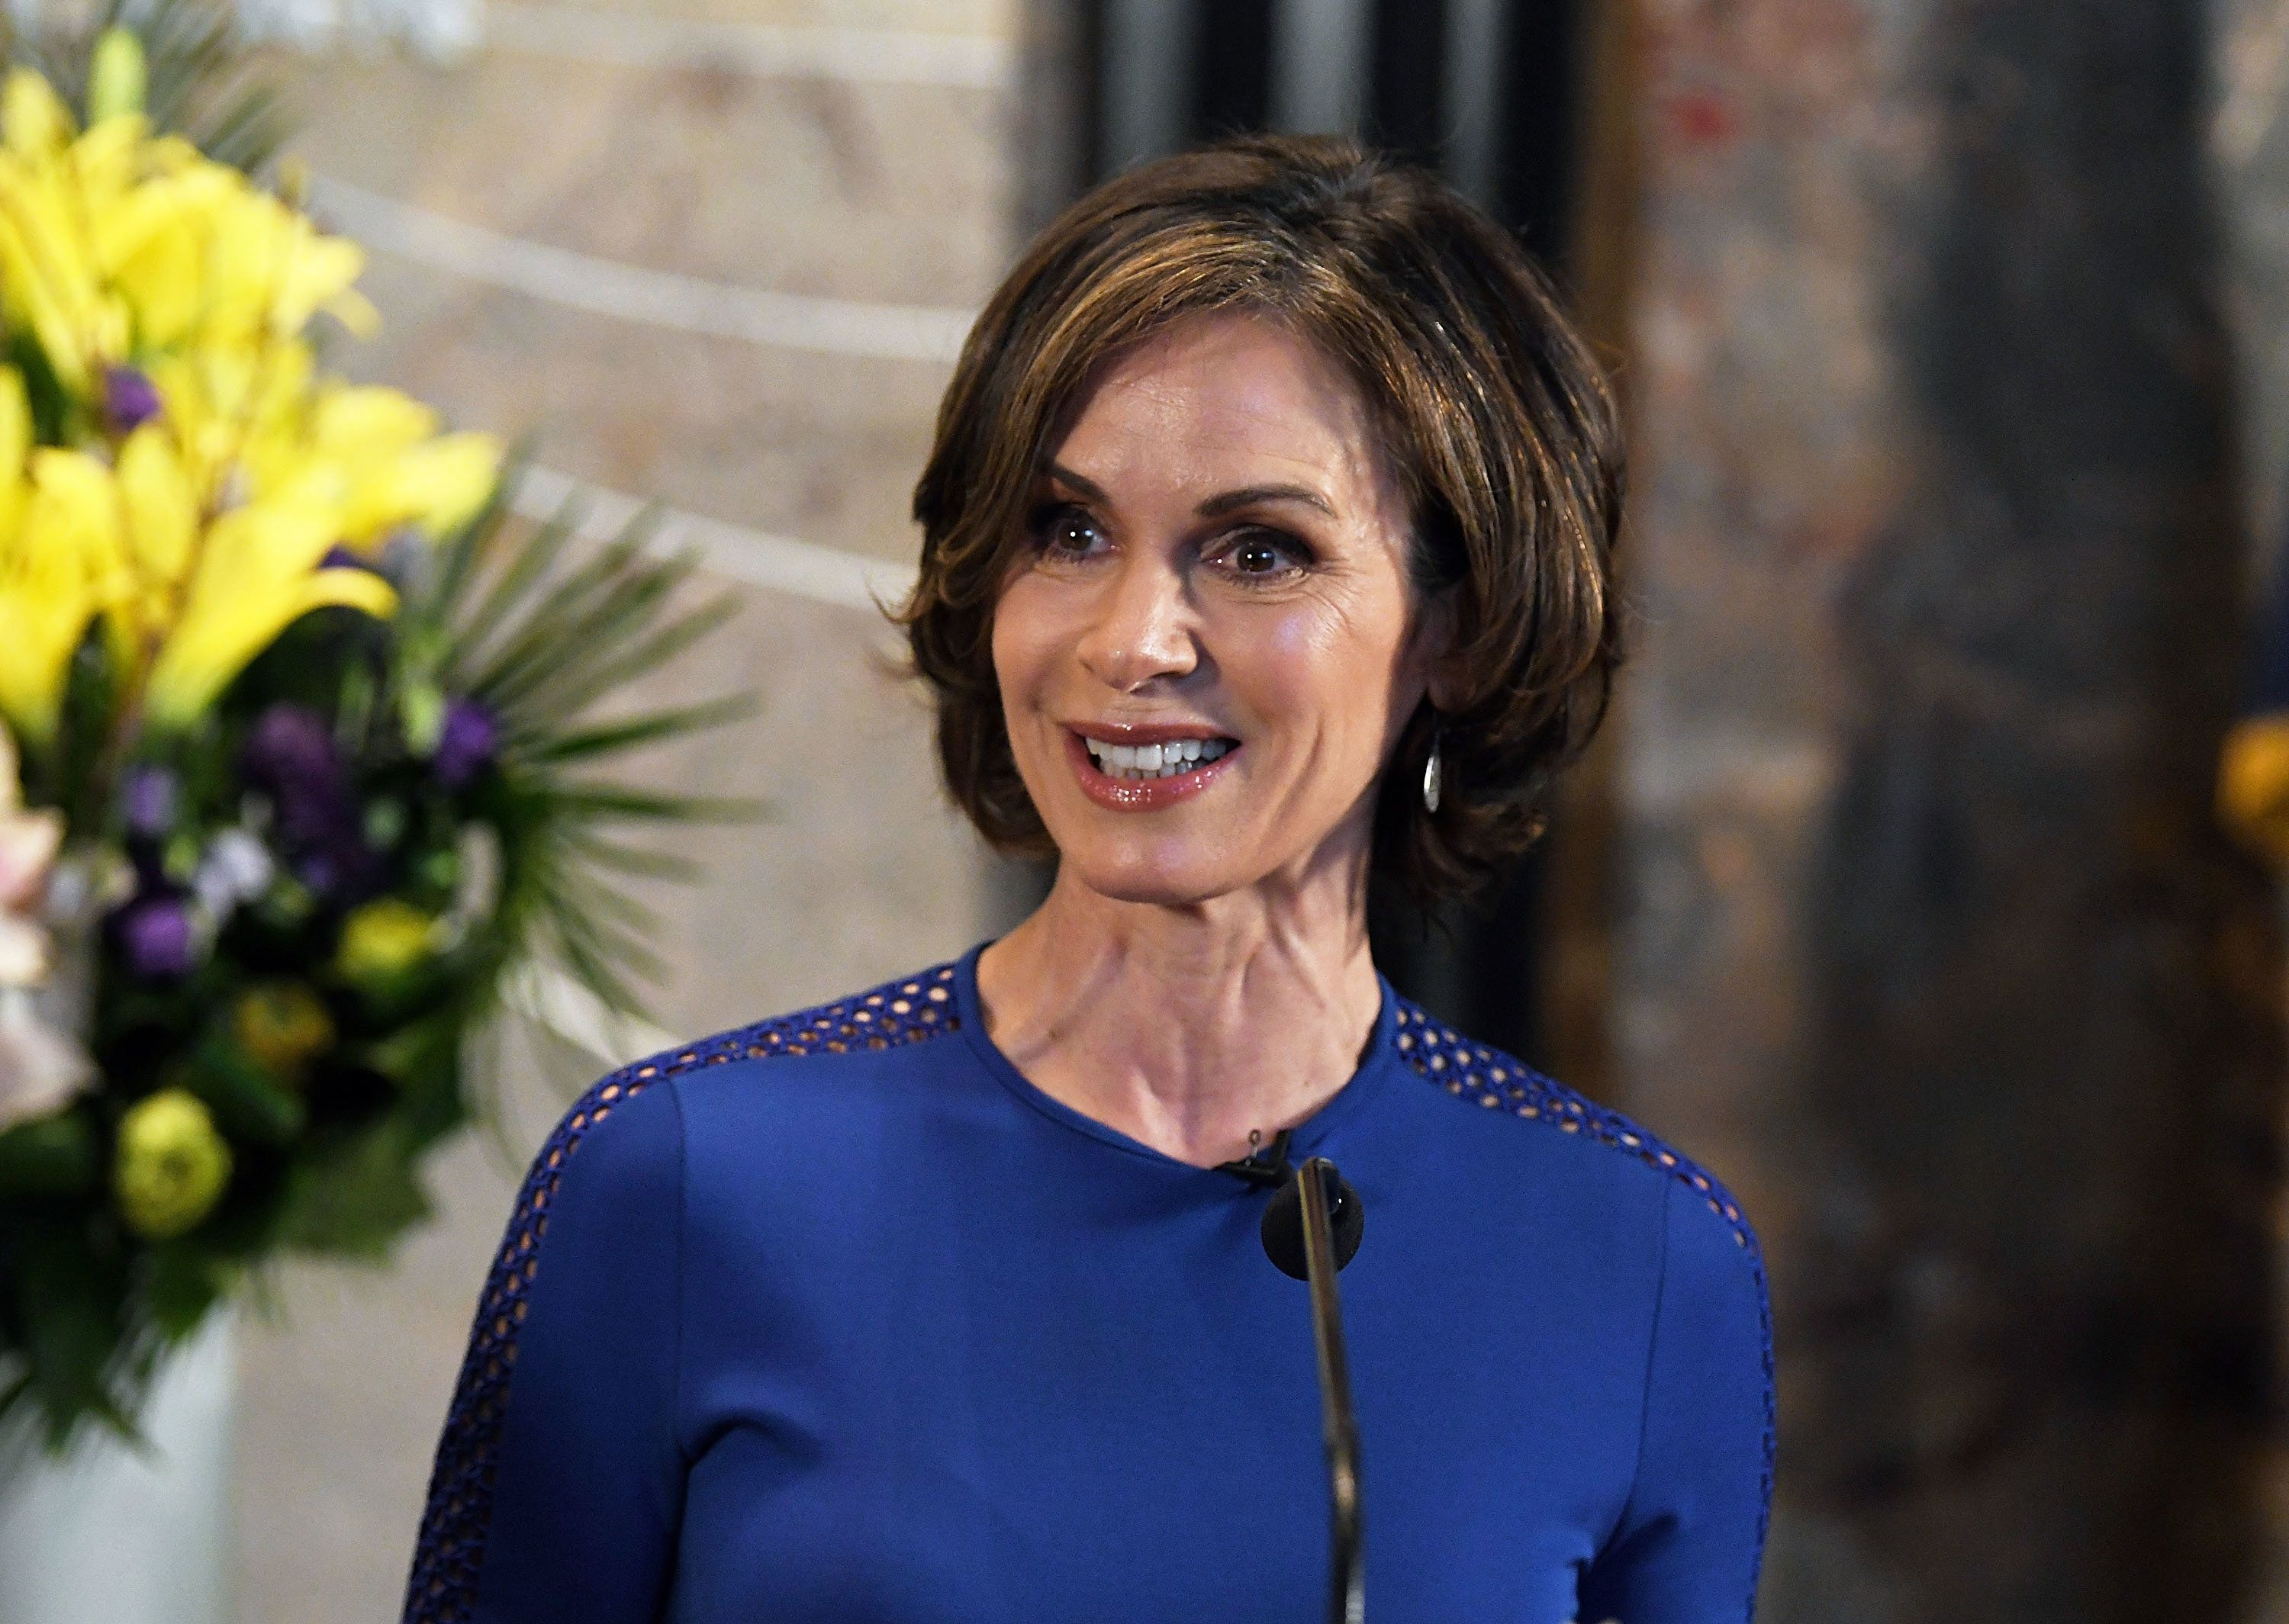 NEW YORK, NY - SEPTEMBER 29:  Elizabeth Vargas visits The Empire State Building to celebrate the 40th season of ABC's '20/20' at The Empire State Building on September 29, 2017 in New York City.  (Photo by Slaven Vlasic/Getty Images)